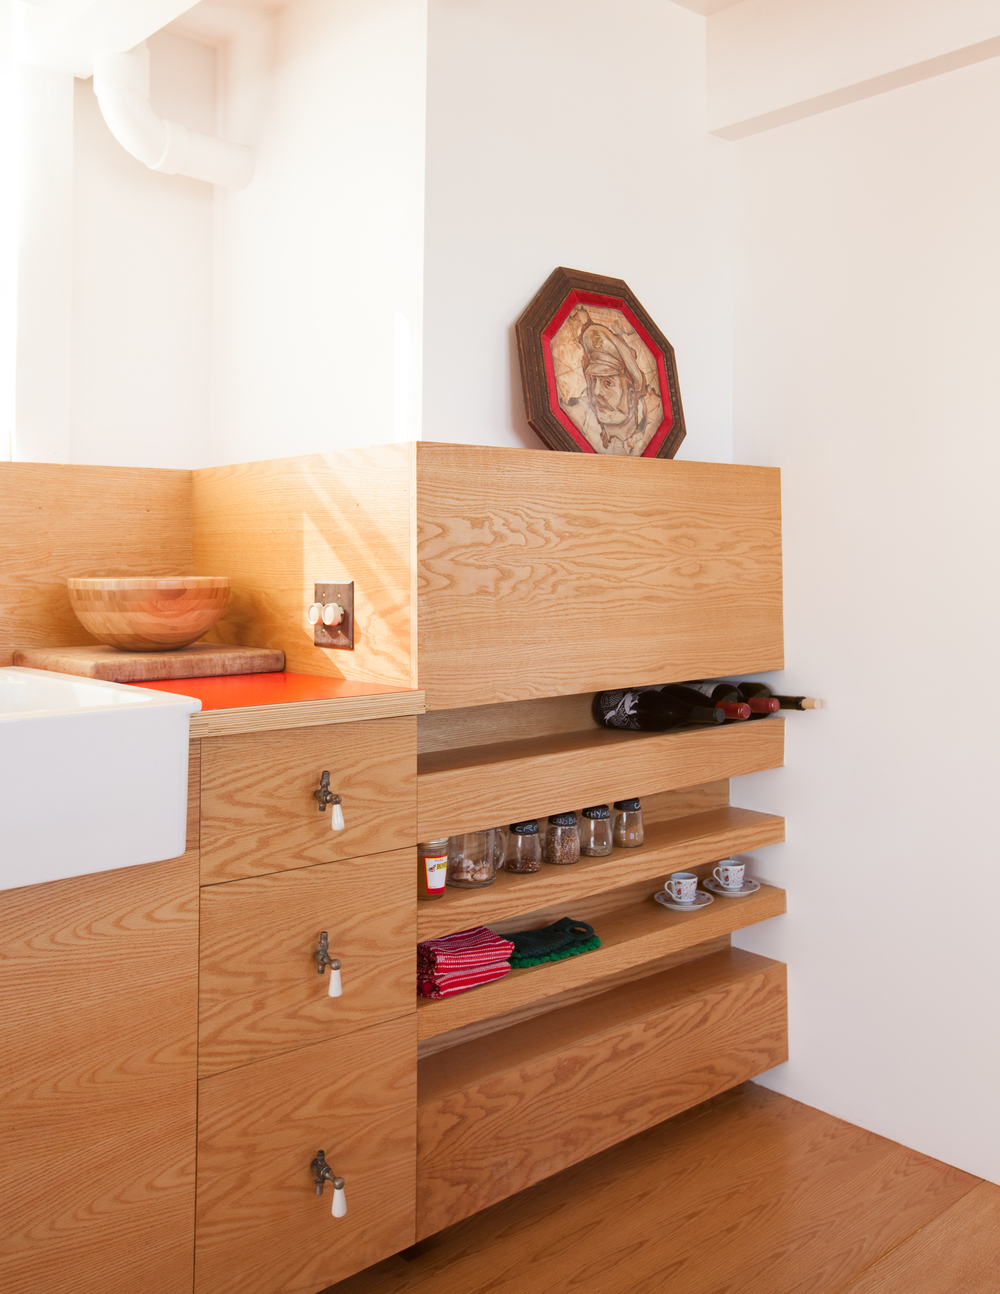 shelving and cabinets // Houseboat by Sky Lanigan for Medium Plenty